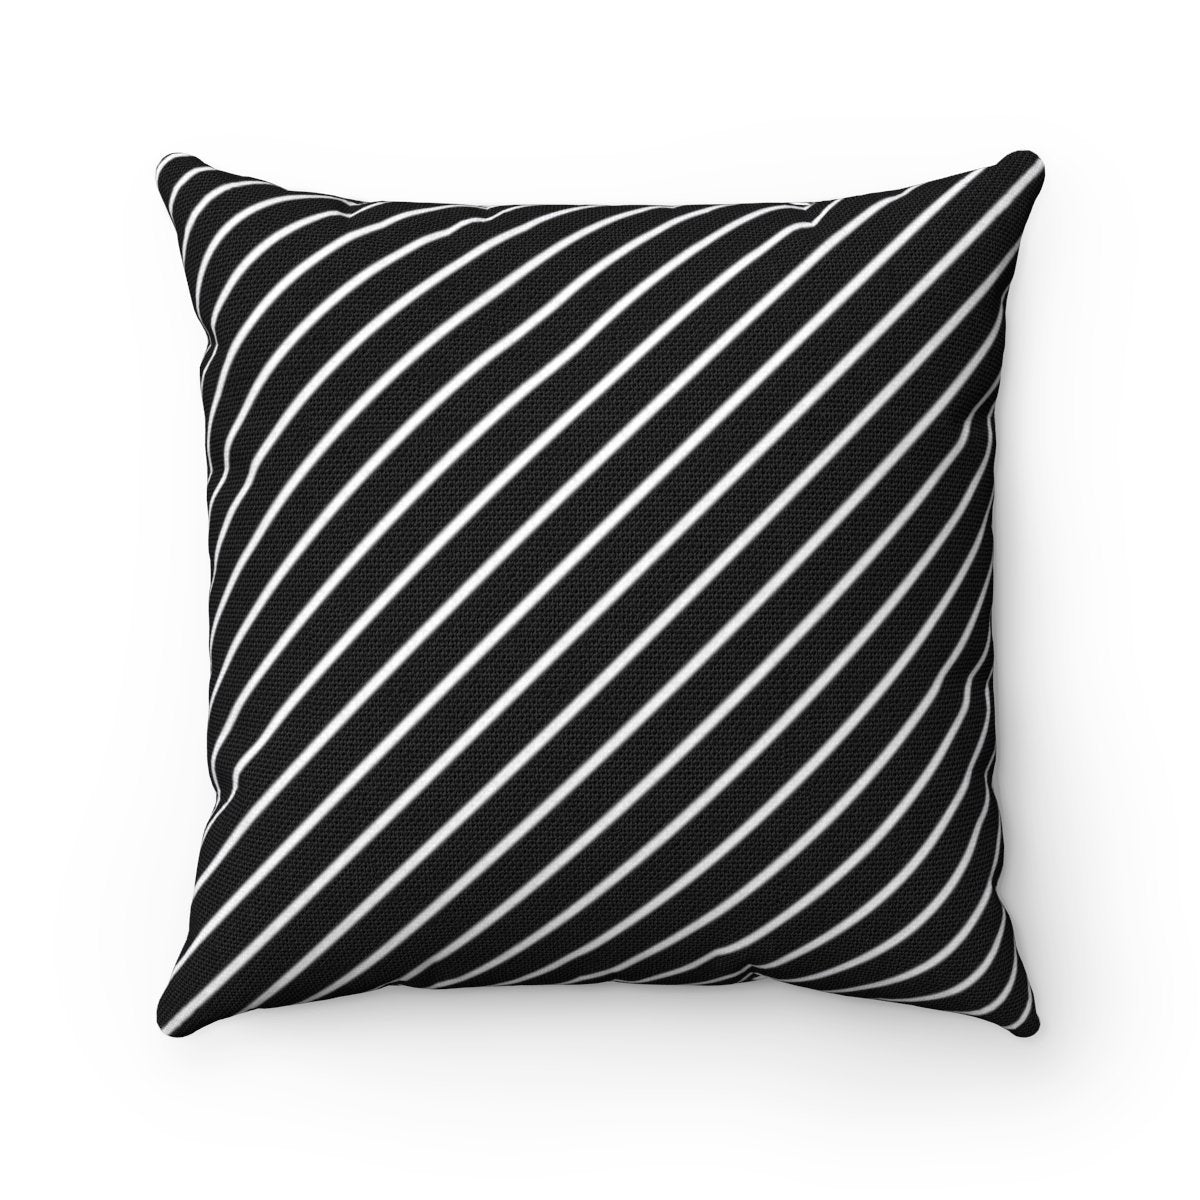 Striped and herringbone 2 in 1 decorative cushion cover-Home Decor - Decorative Accents - Pillows & Throws - Decorative Pillows-Maison d'Elite-Très Elite